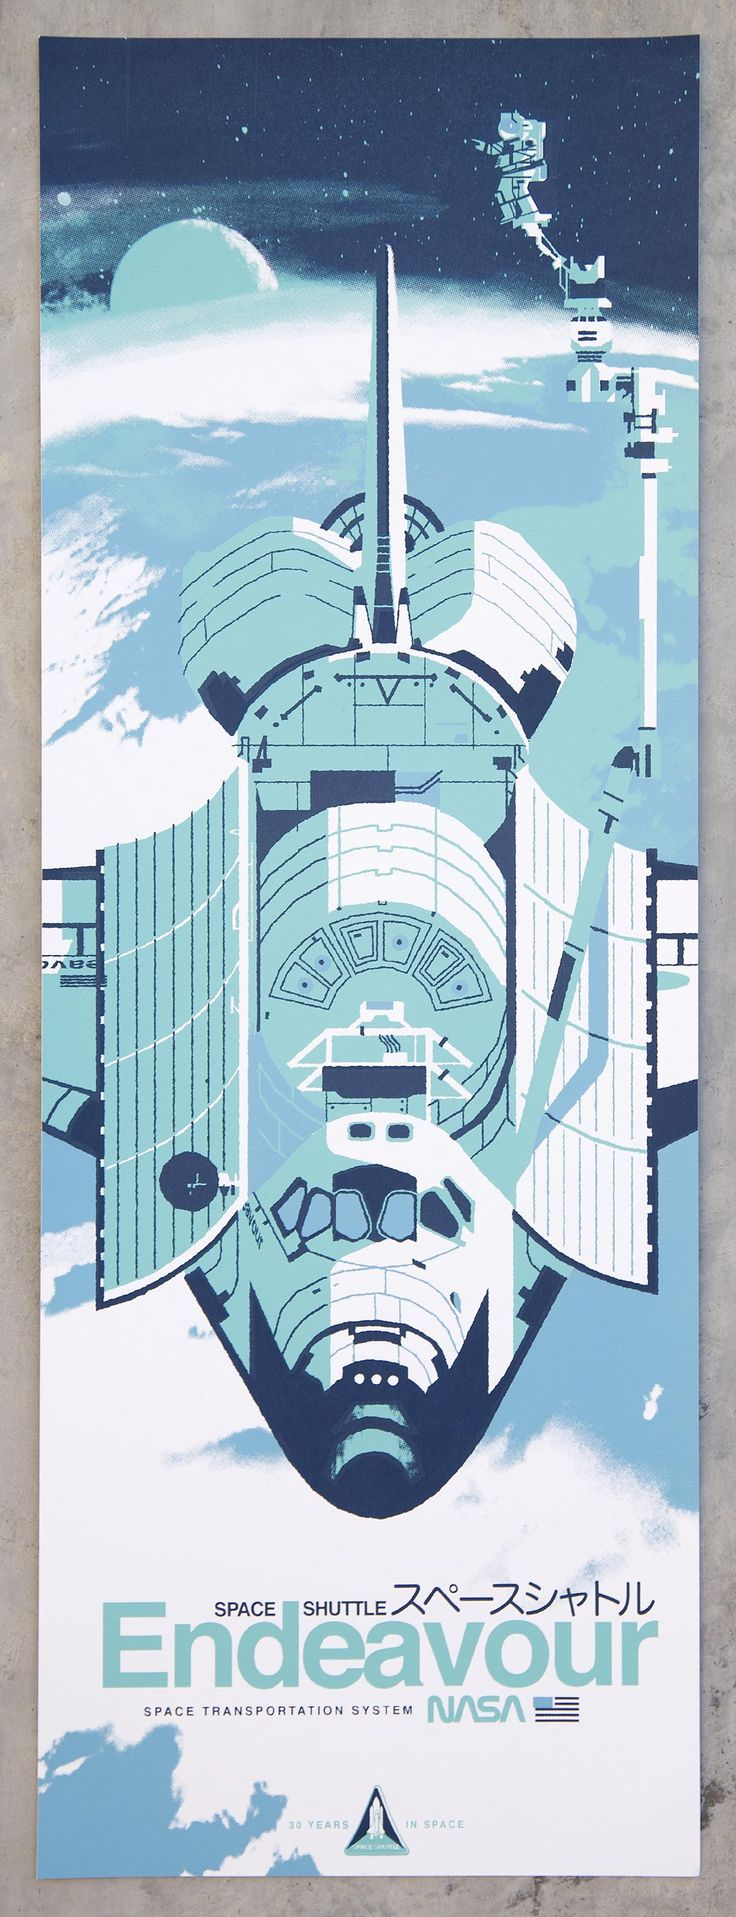 Silkscreen design by Kevin Dart printed by Gray Area Print